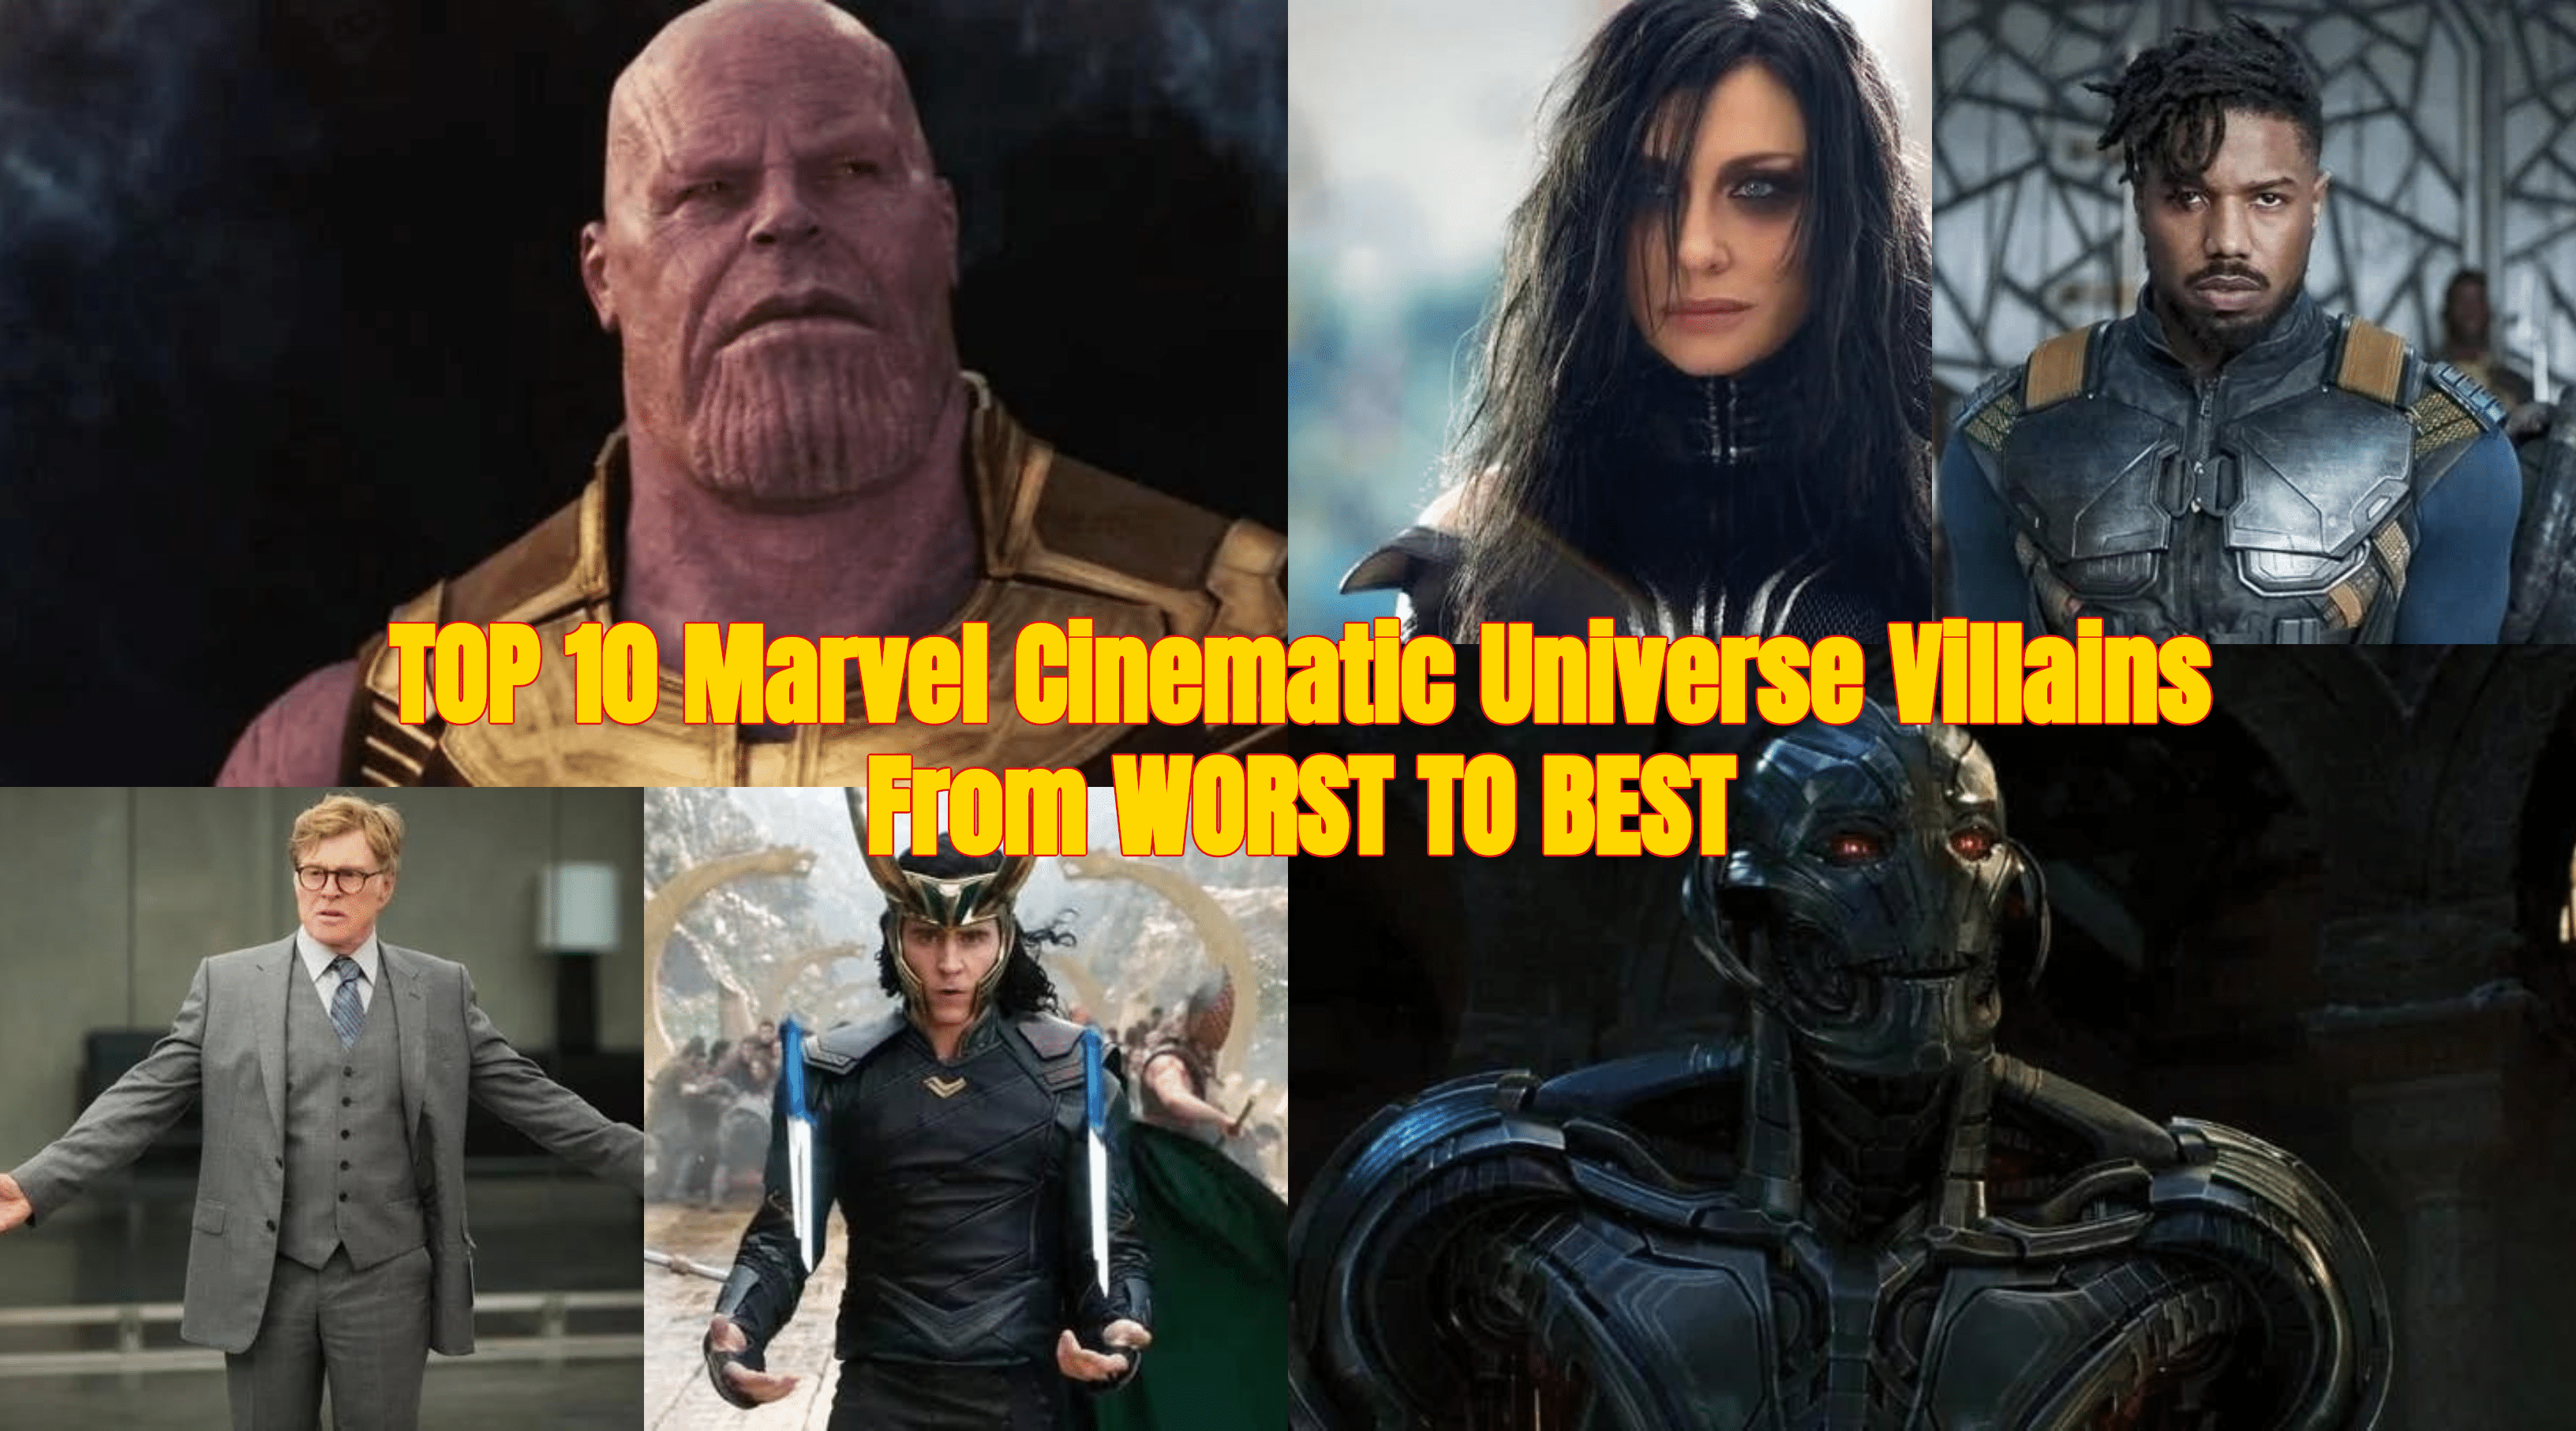 TOP 10 Marvel Cinematic Universe Villains From WORST TO BEST